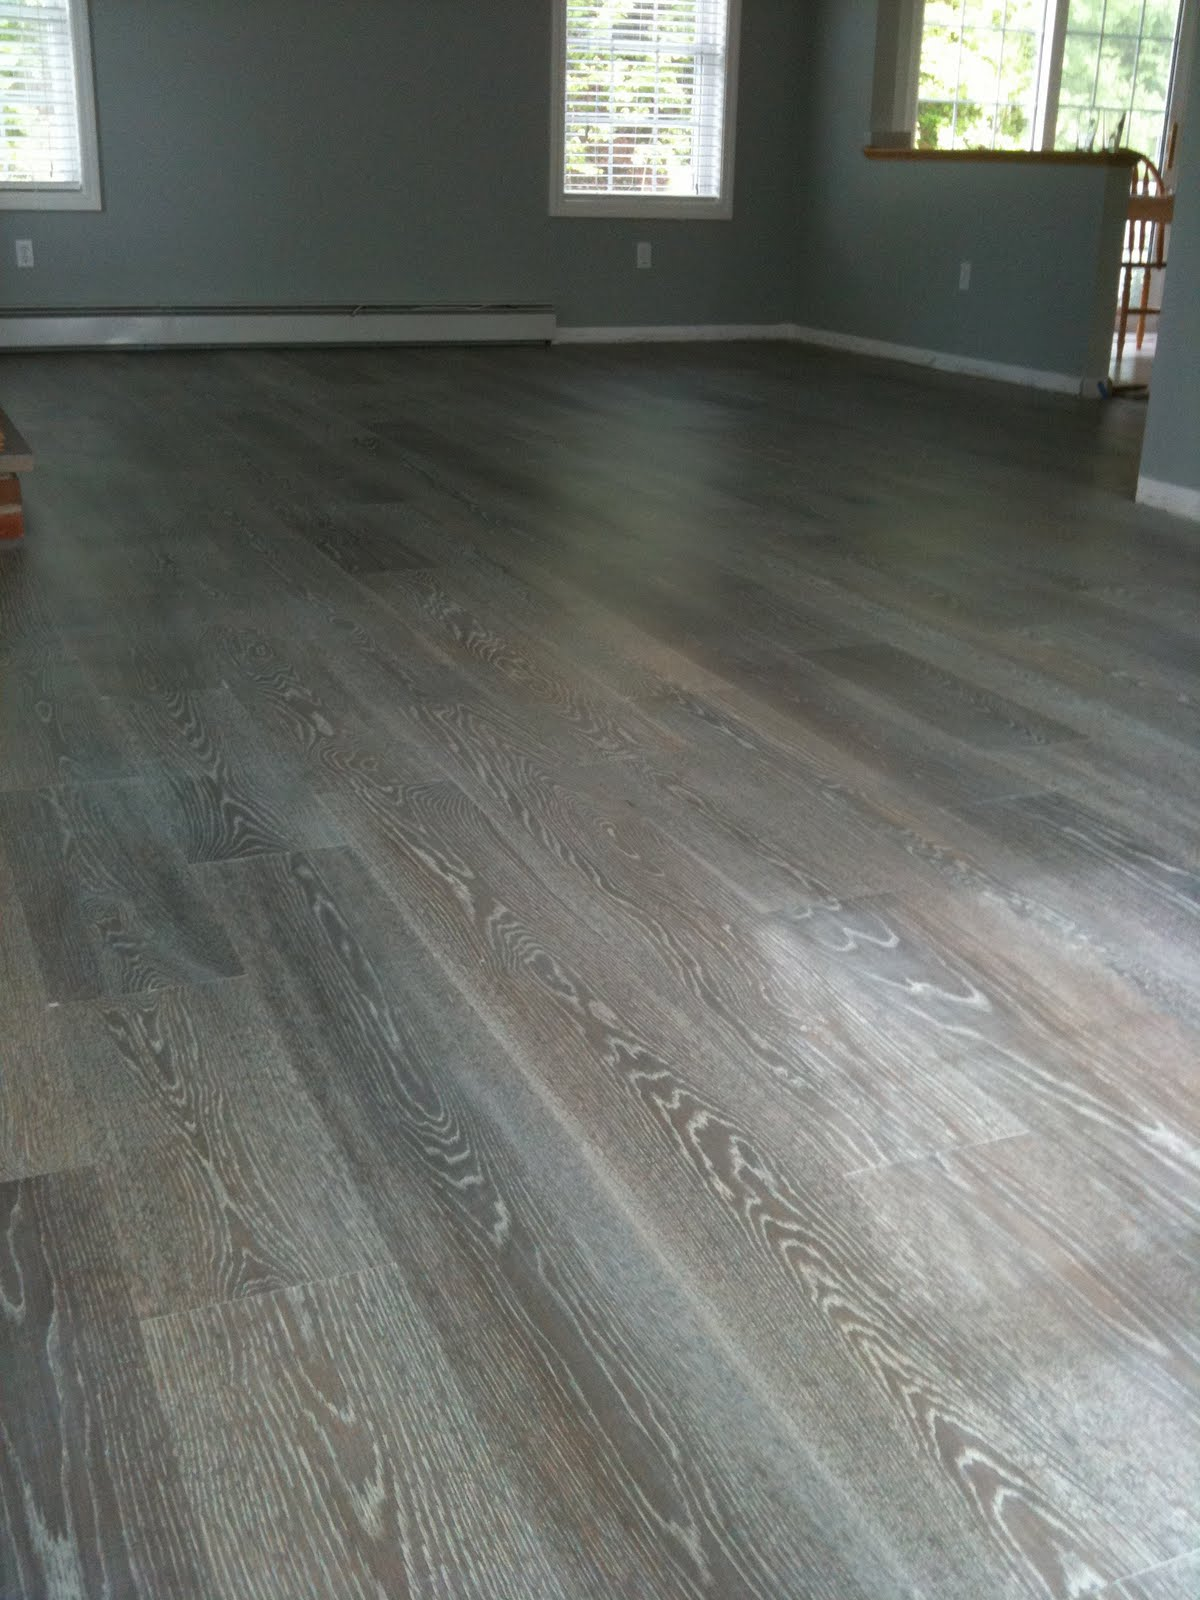 True wesson interior design project gray hardwood floors for Color of hardwood floors